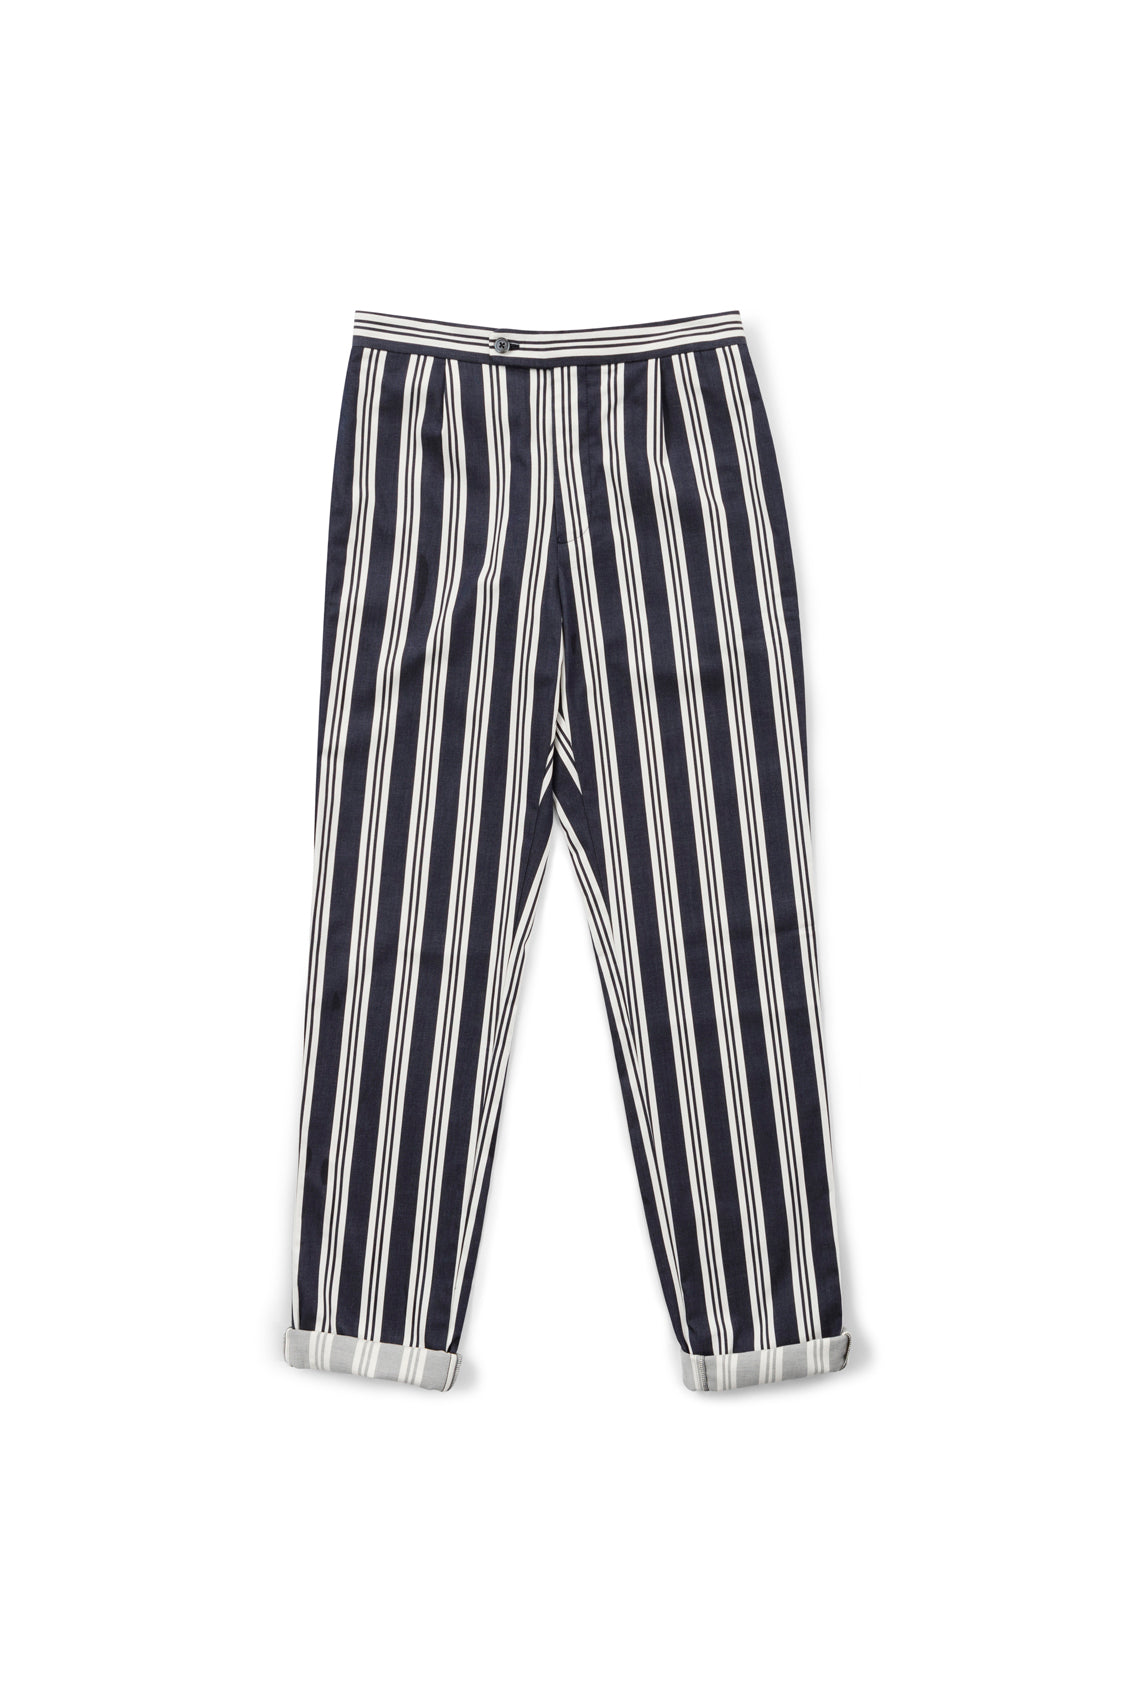 Navy and White Stripe Superfine Cotton Drawstring Trousers